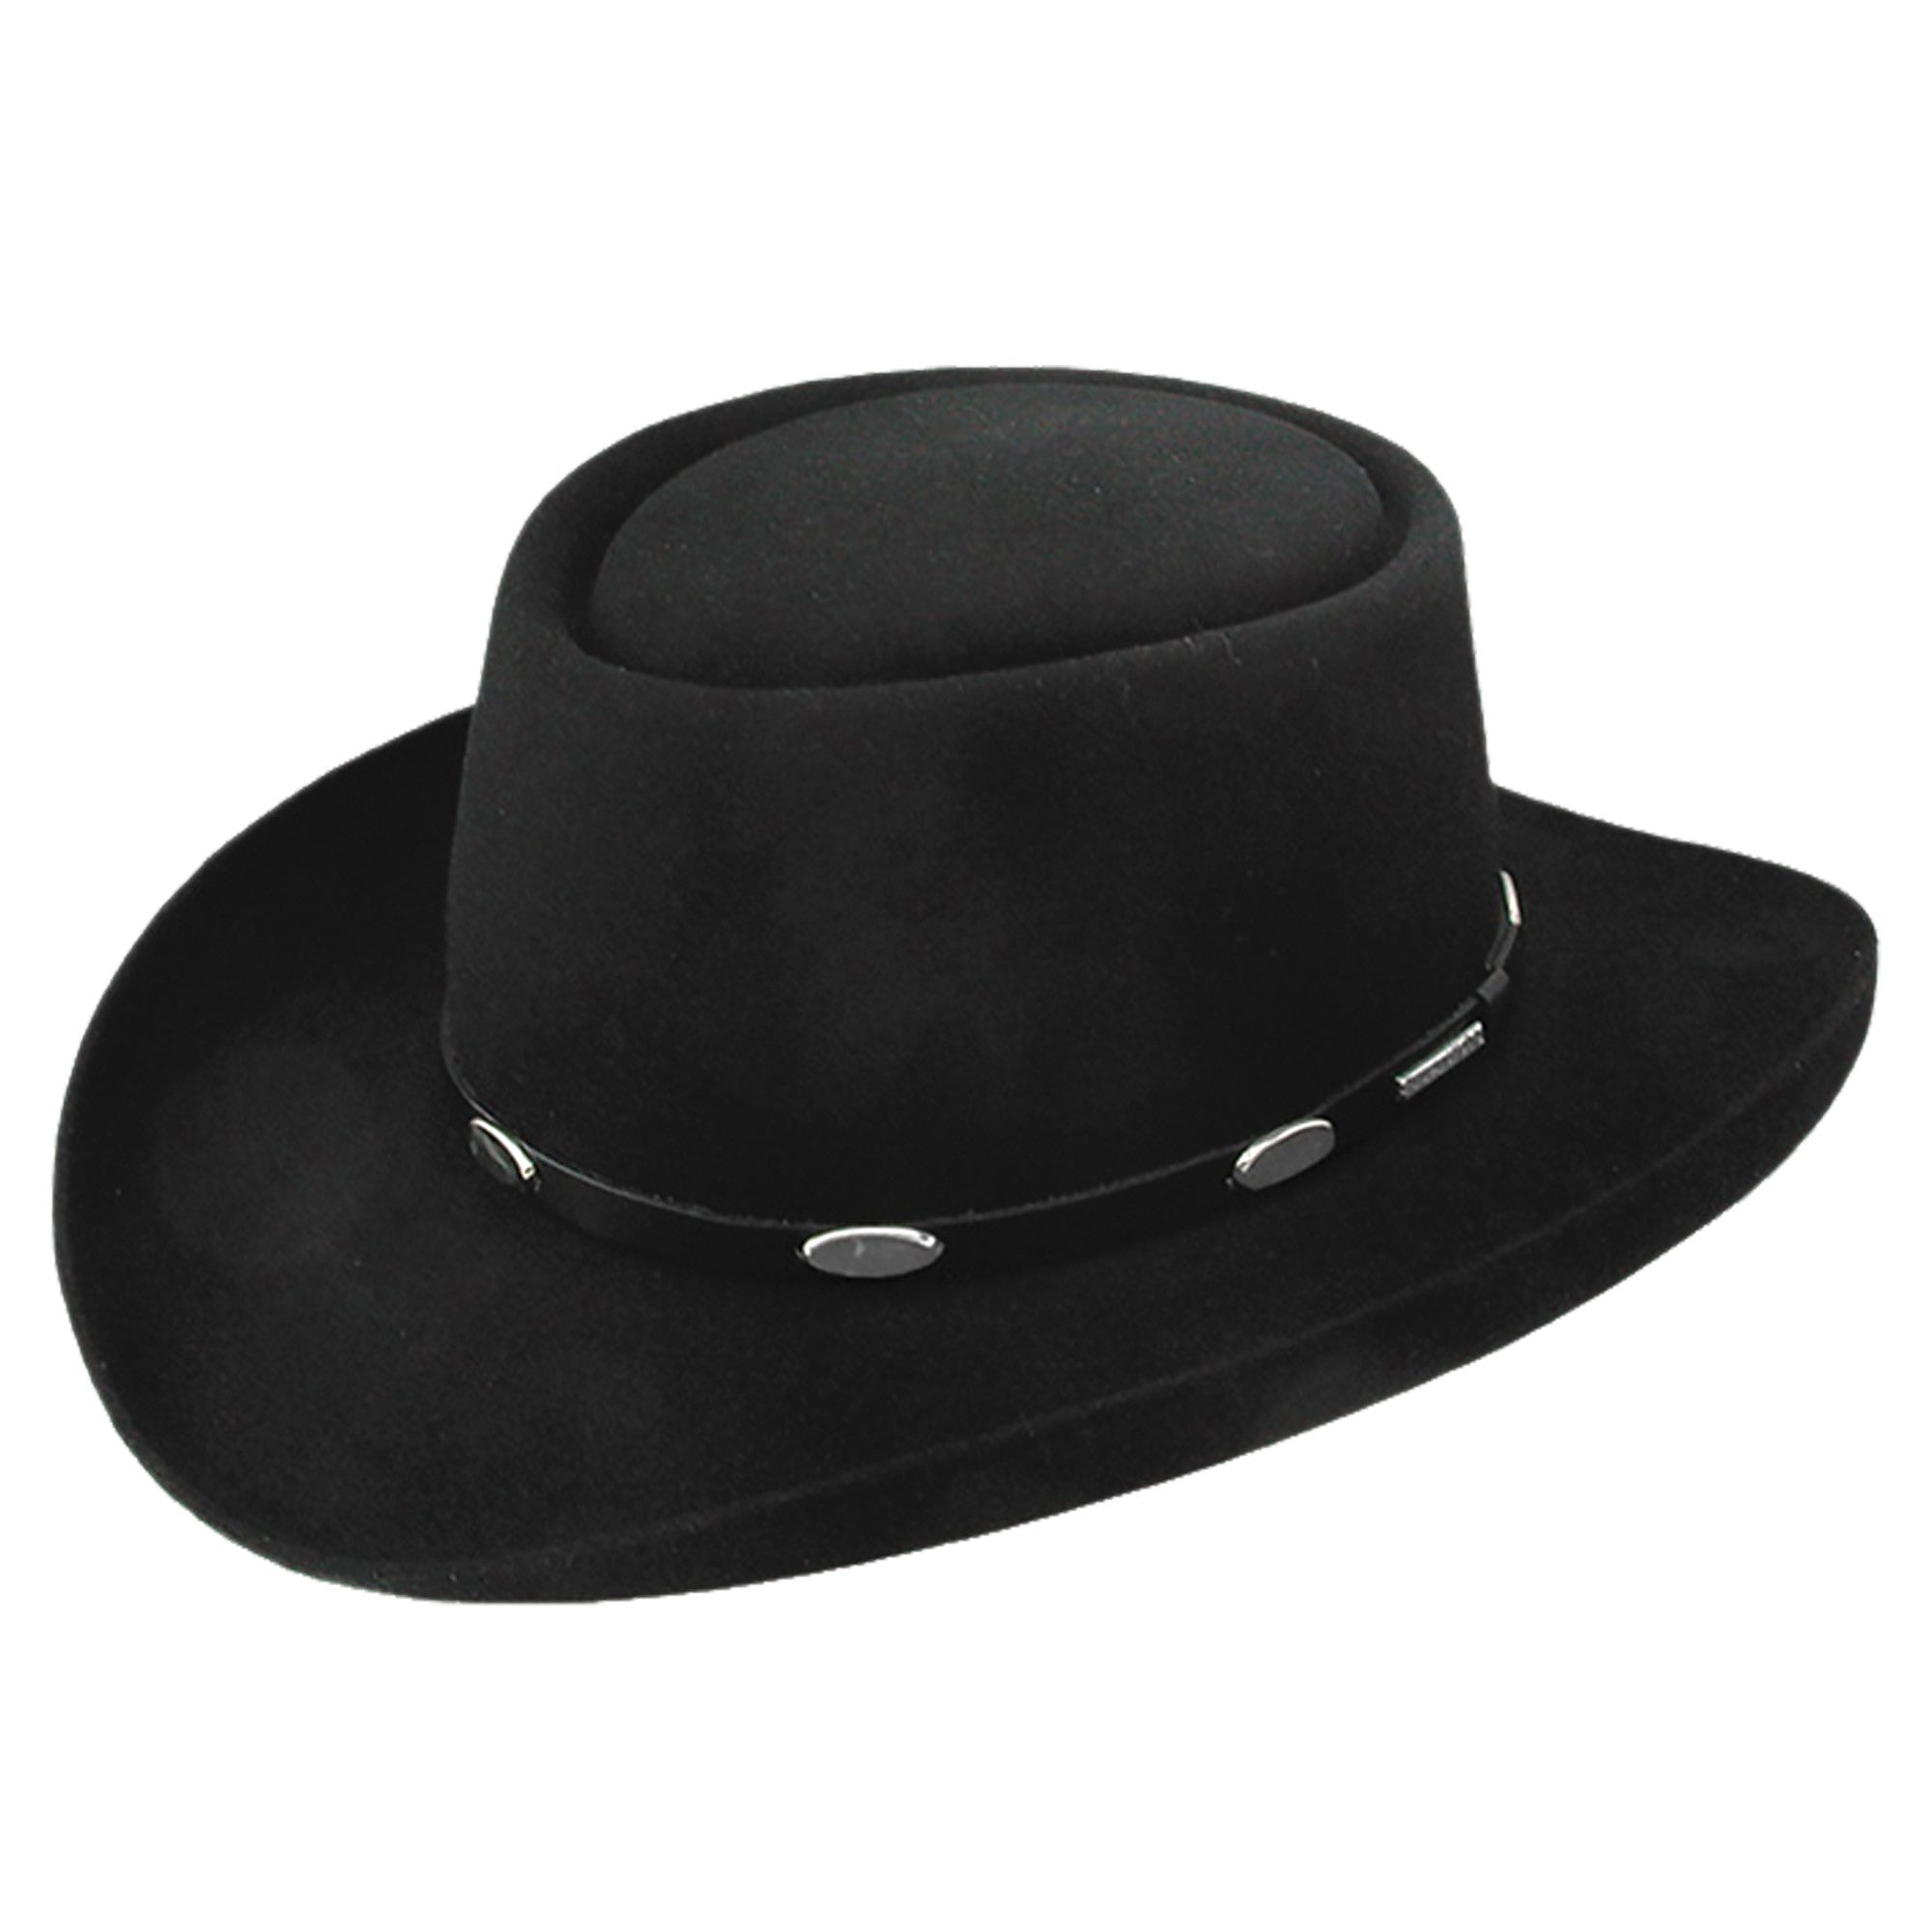 Stetson Royal Flush 5X Felt Hat #SFRYFL-313107